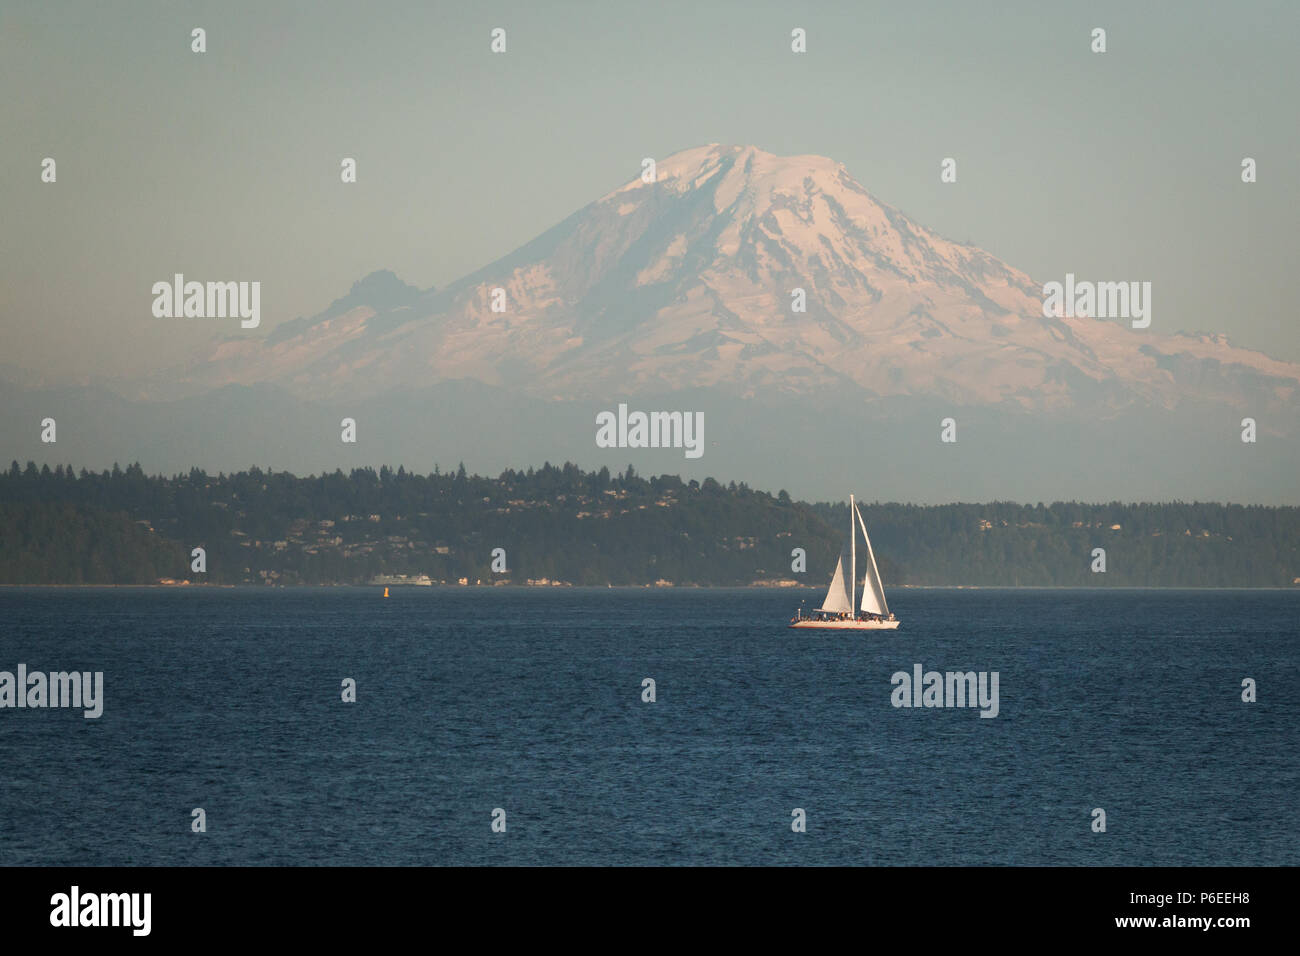 Serenely Bush Sails On Across Sea Of >> Serenely Stock Photos Serenely Stock Images Alamy